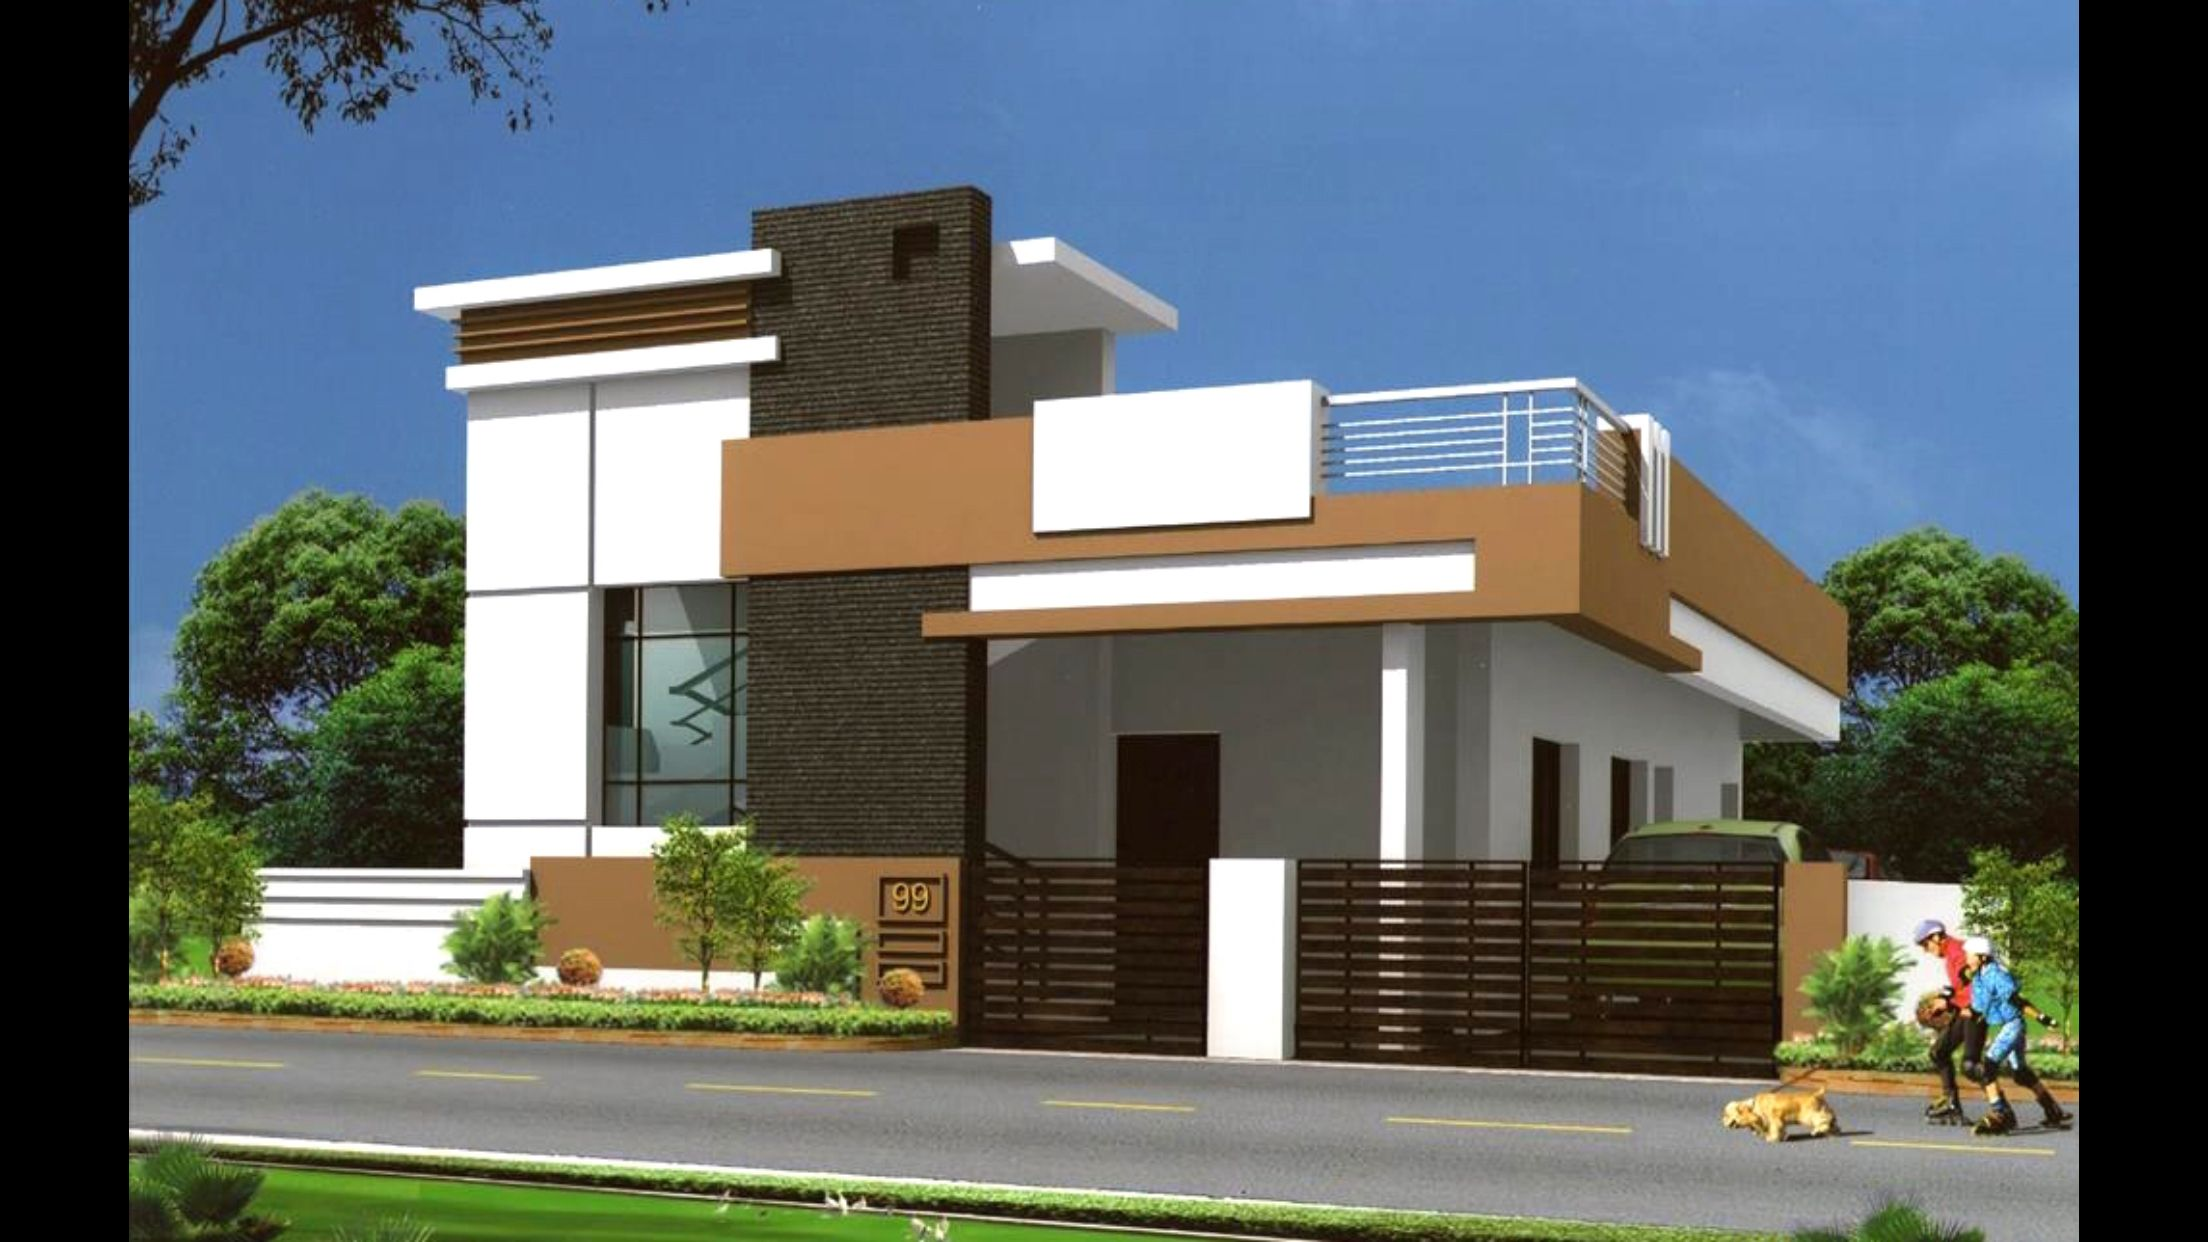 D Front Elevation Ground Floor : Pin by rathish poovadan on exterior design pinterest